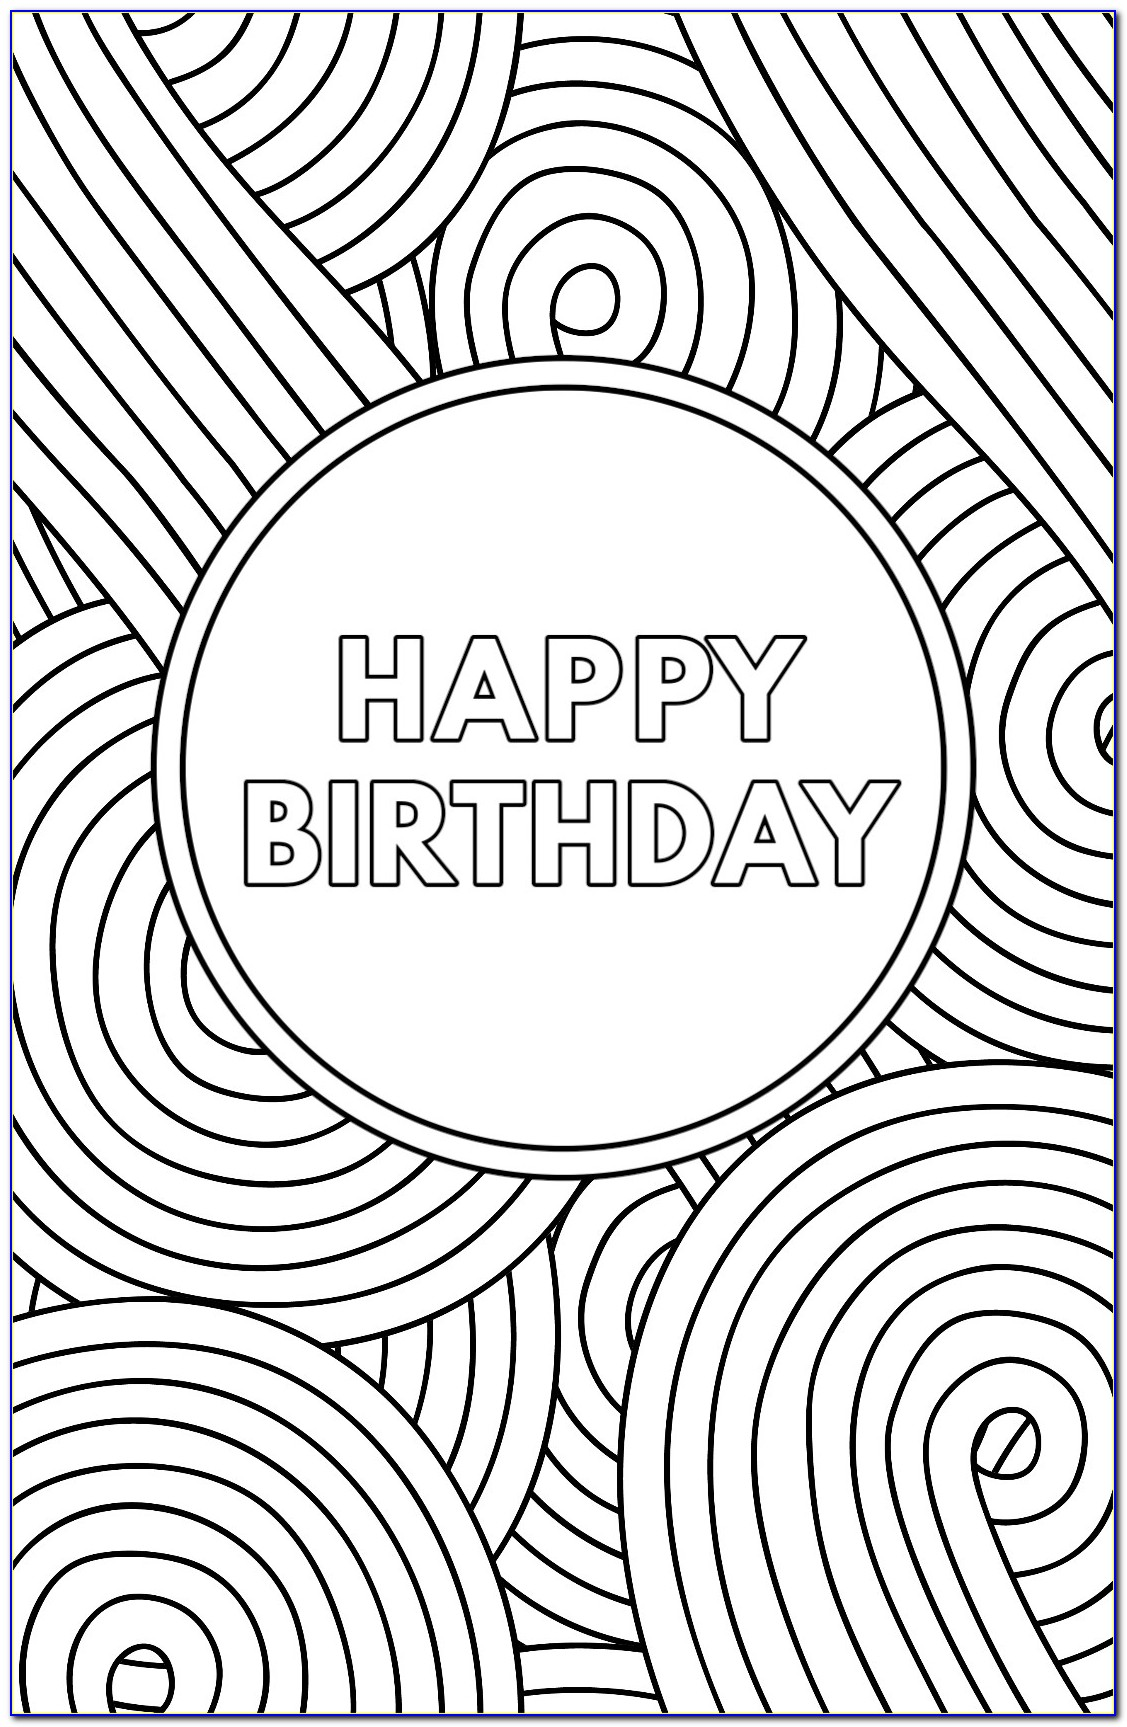 Free Printable Birthday Cards Coloring Pages